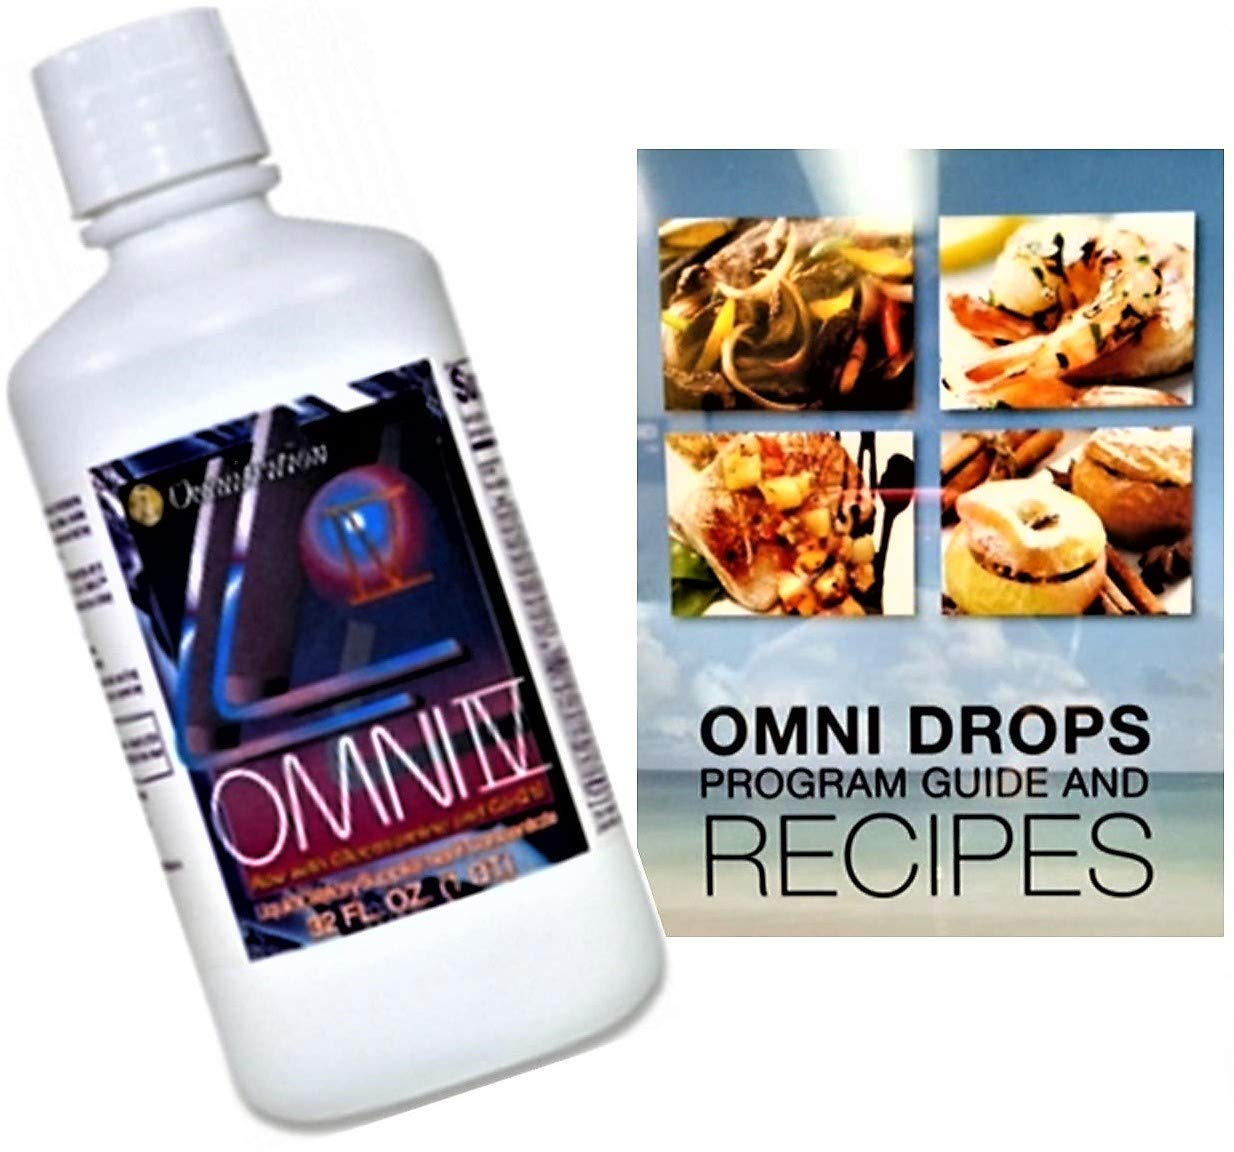 Omni Drops Diet Drops with Vitamin B12-4 oz with Program Guide and Omni IV (Omni 4) Liquid Vitamins and Minerals with Glucosamine and Co-Q10 by Omnitrition Bundle by Omnitrition